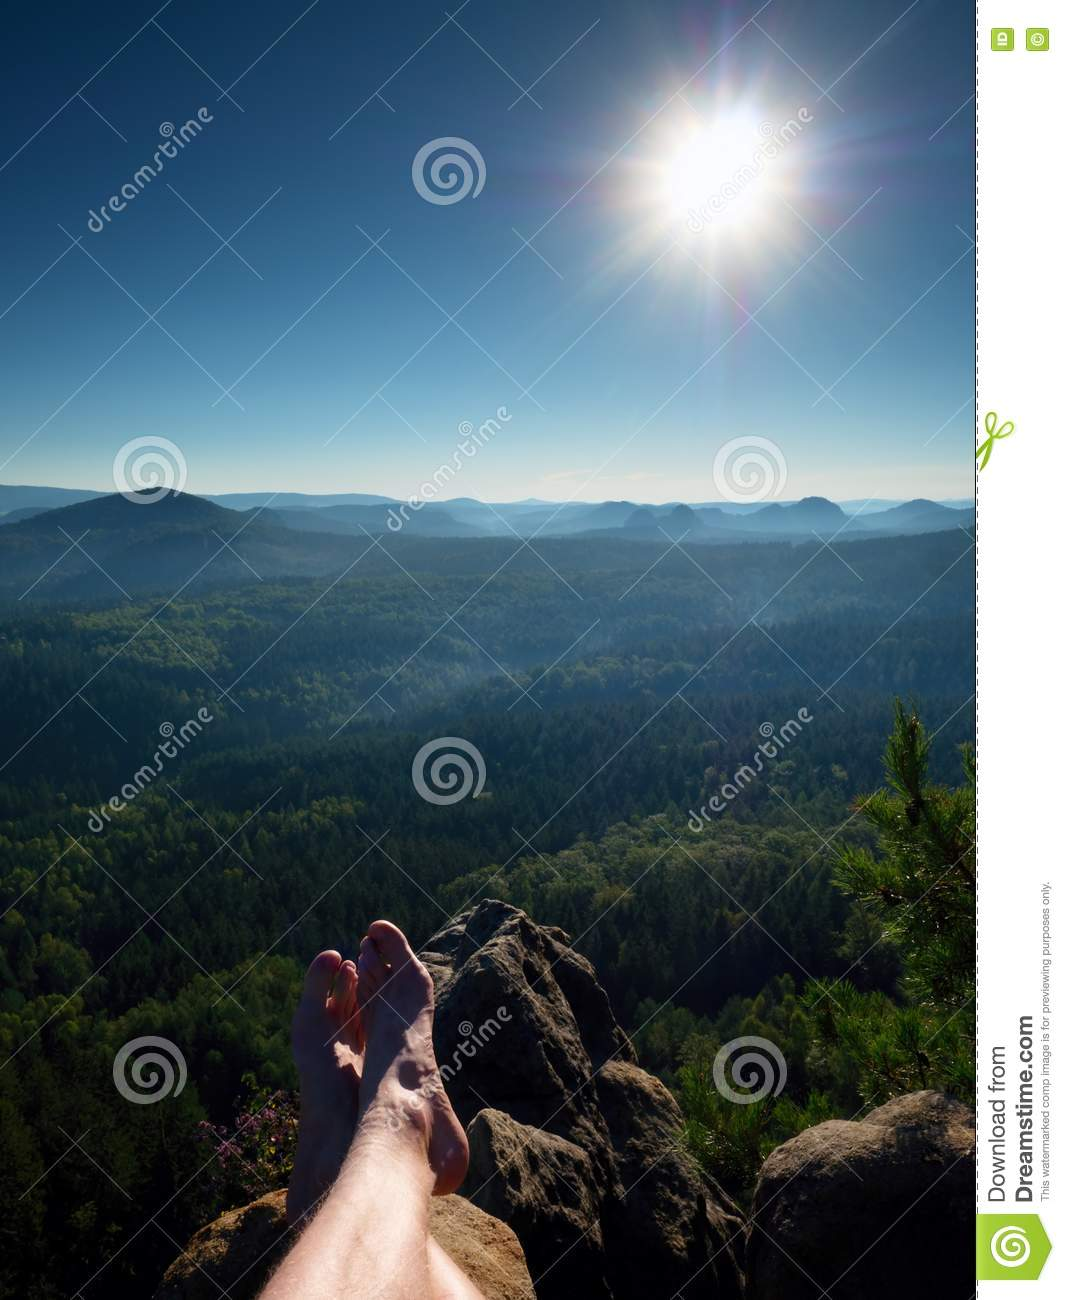 Naked Male Legs Take Rest On Peak Outdoor Activities Stock Image - Image 77778517-8592